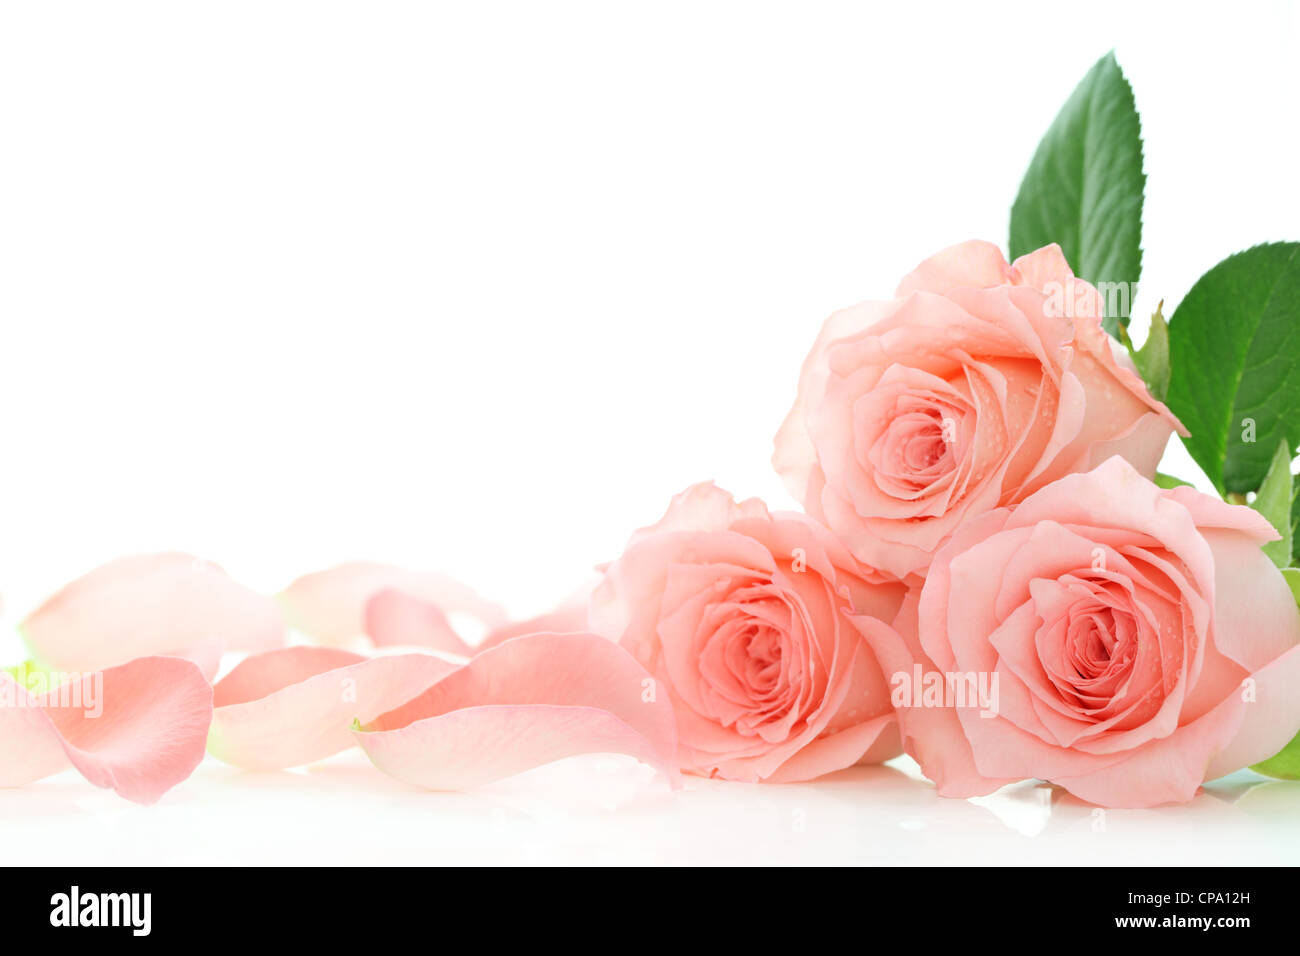 Pink roses petals on white background - Stock Image